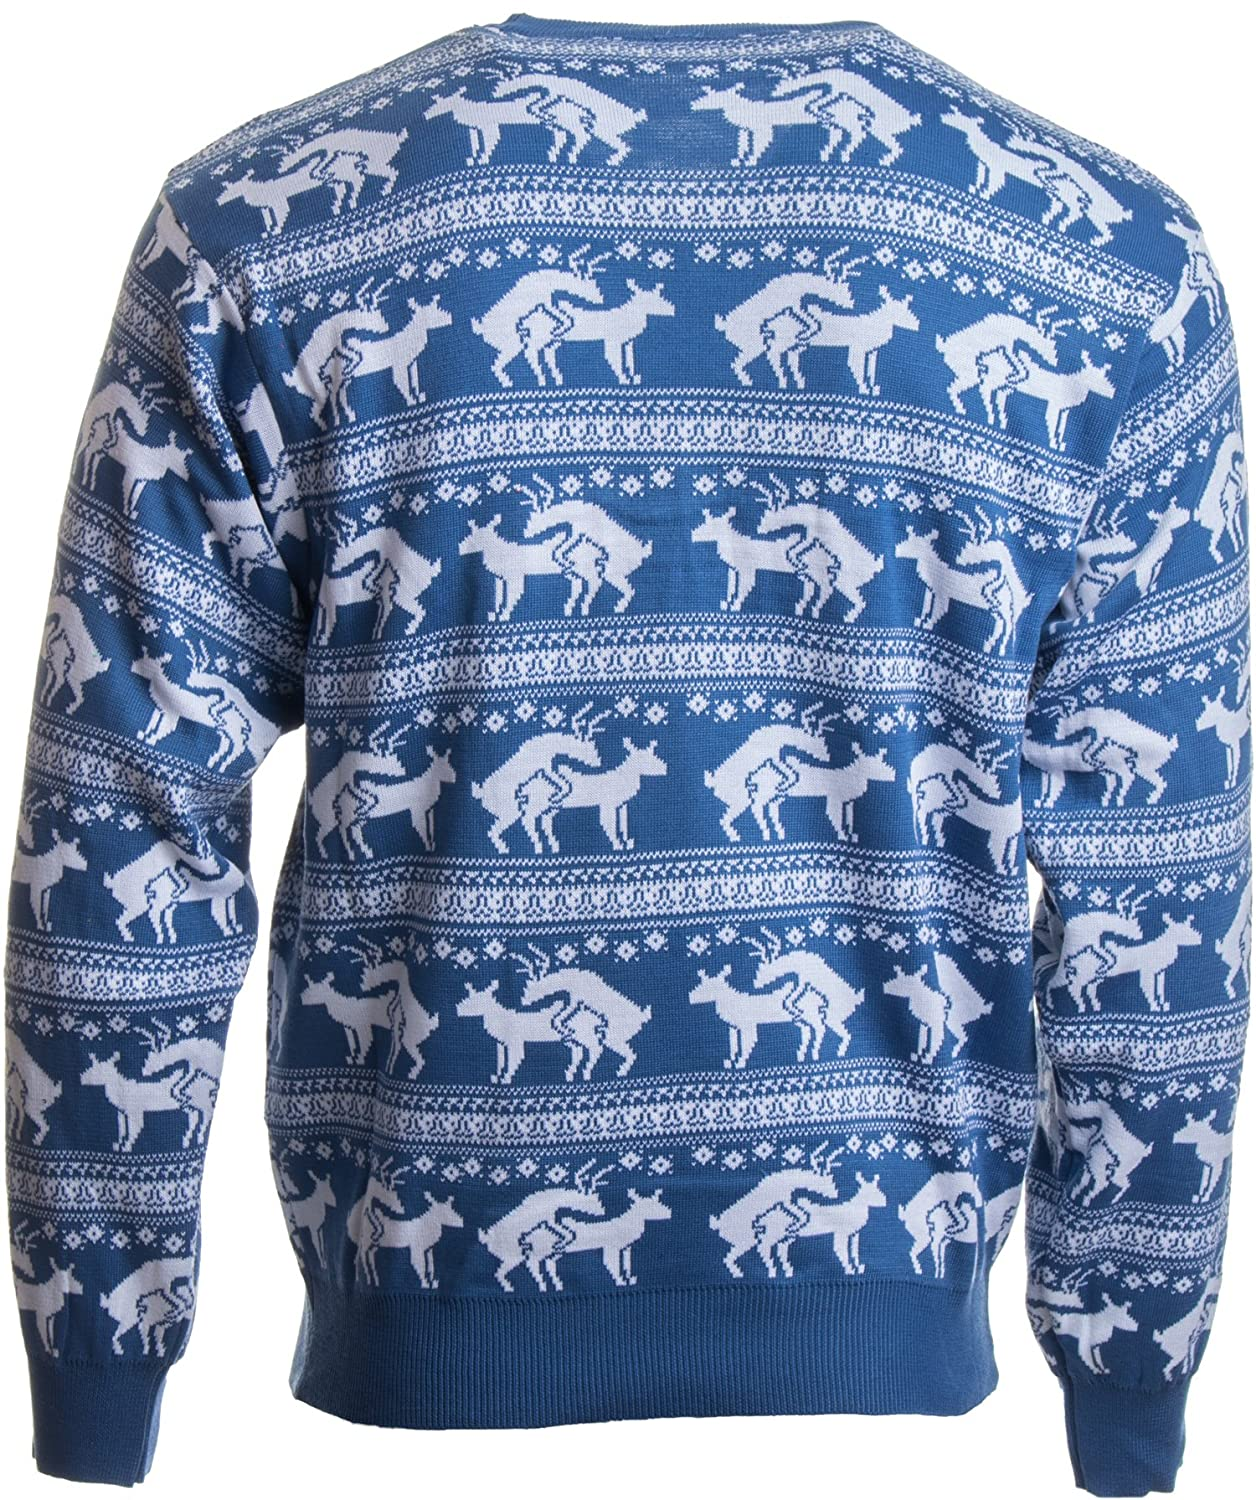 Amazon.com: Ann Arbor T-shirt Co. Reindeer Humping Ugly Christmas Sweater  w/Holiday Insertion & Christmas Dongs: Clothing